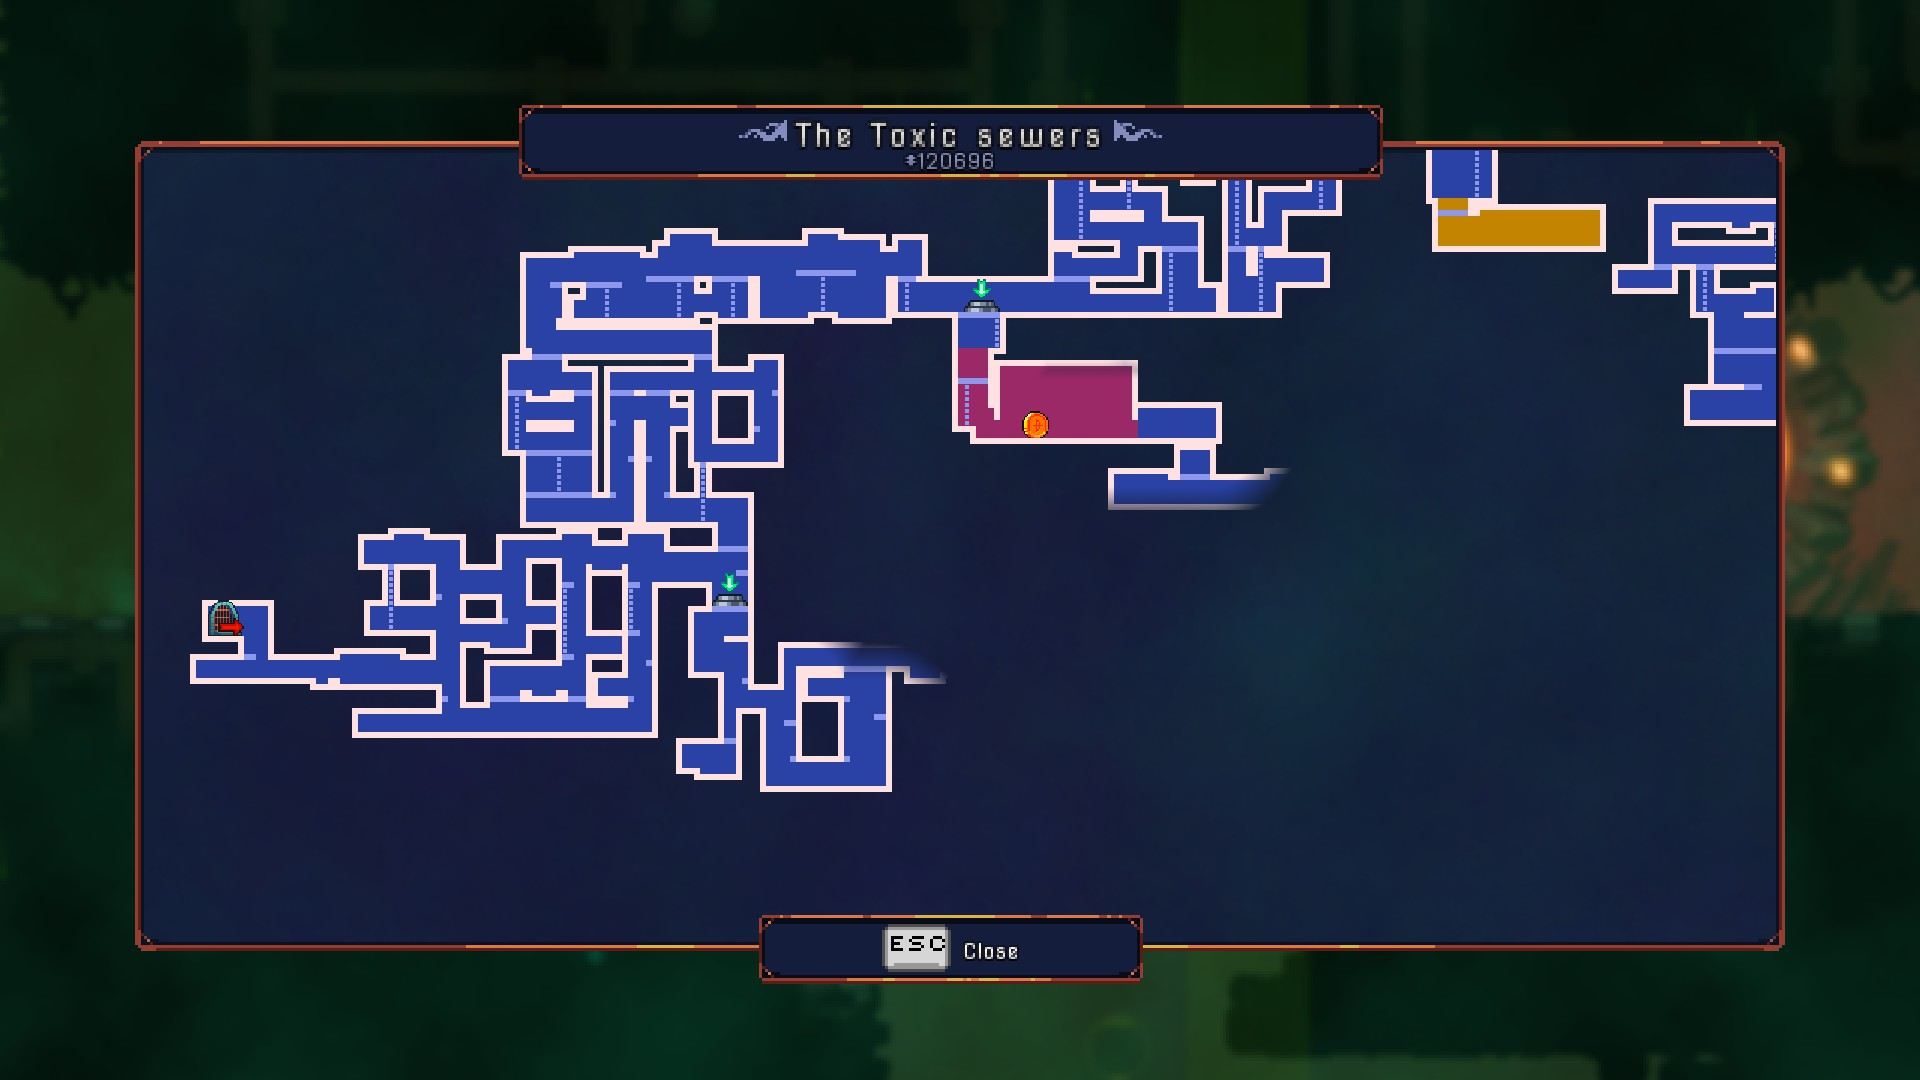 Map] impossible map :: Dead Cells Bugs & Crashes on map of environment, map of control, map of nephron, map of grid, map of 1922, map of equality, map of excretory system, map of identity, map of jerusalem's lot, map of web, map of skin, map of nw spain, map of cont, map of tv, map of metabolism, map of biology, map of data, map of gps, map of chromosome, map of wifi,